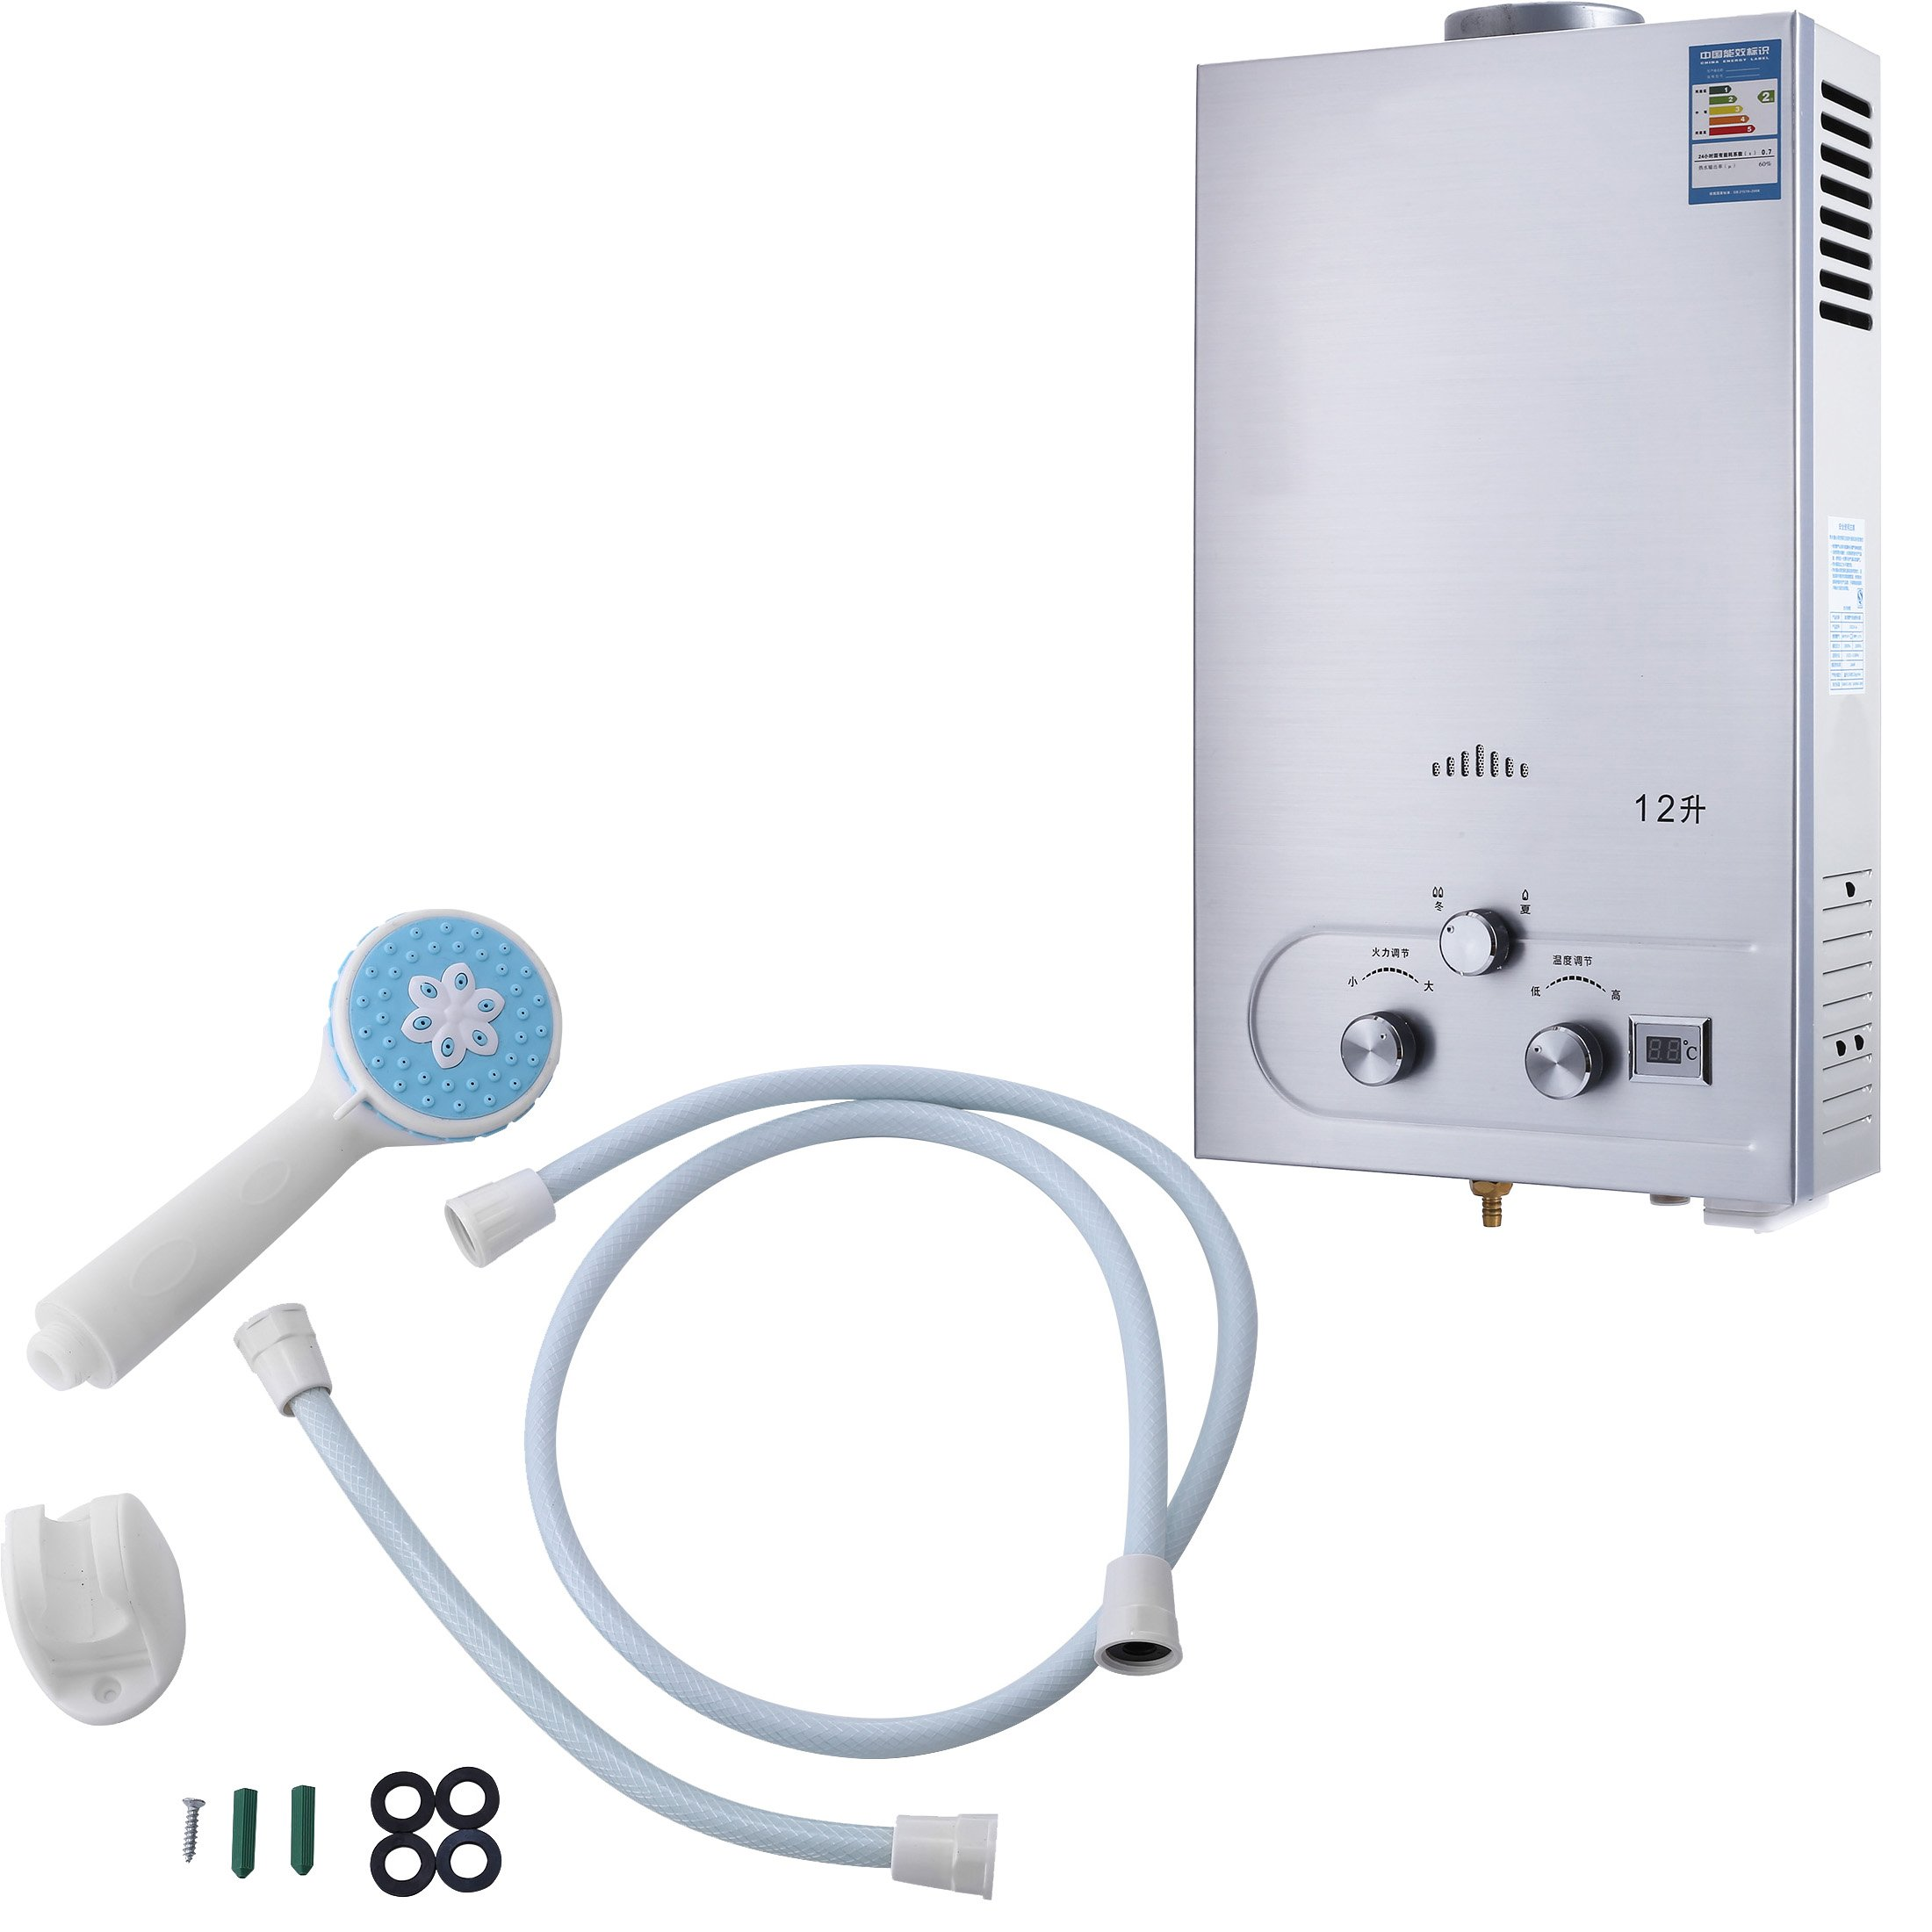 VEVOR Hot Water Heater 12L Liquefied Natural Gas Water Heater Tankless Instant Boiler with Shower Head